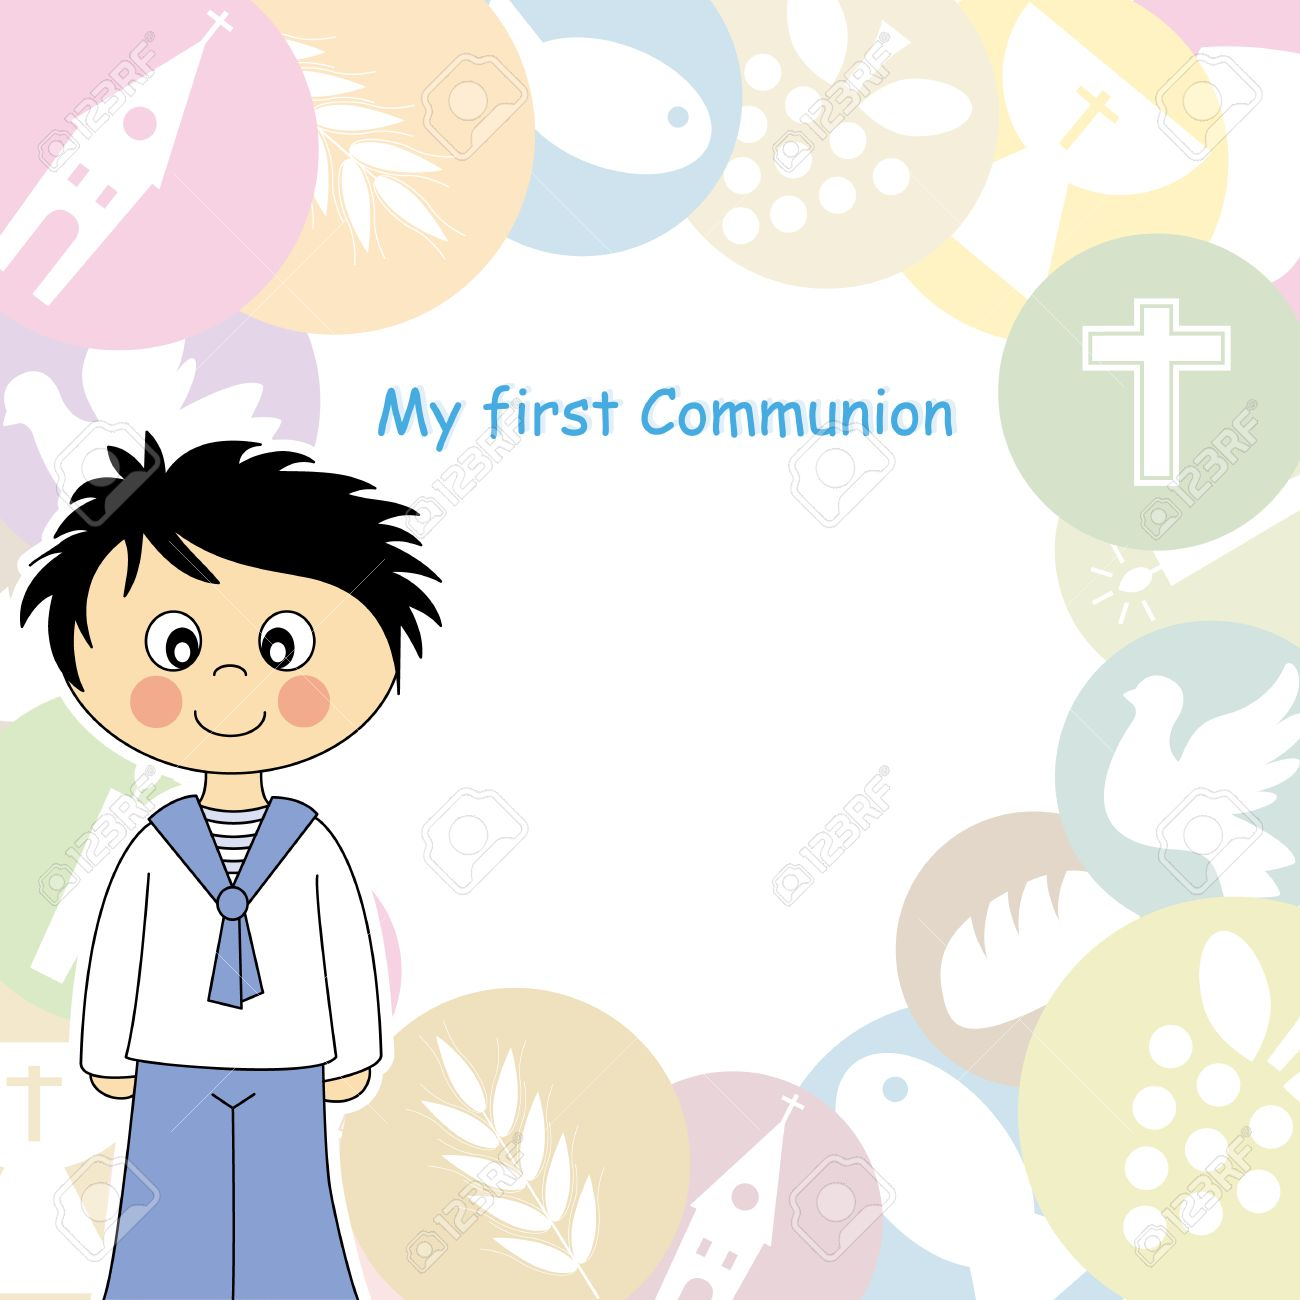 boy first communion invitation royalty free cliparts vectors and